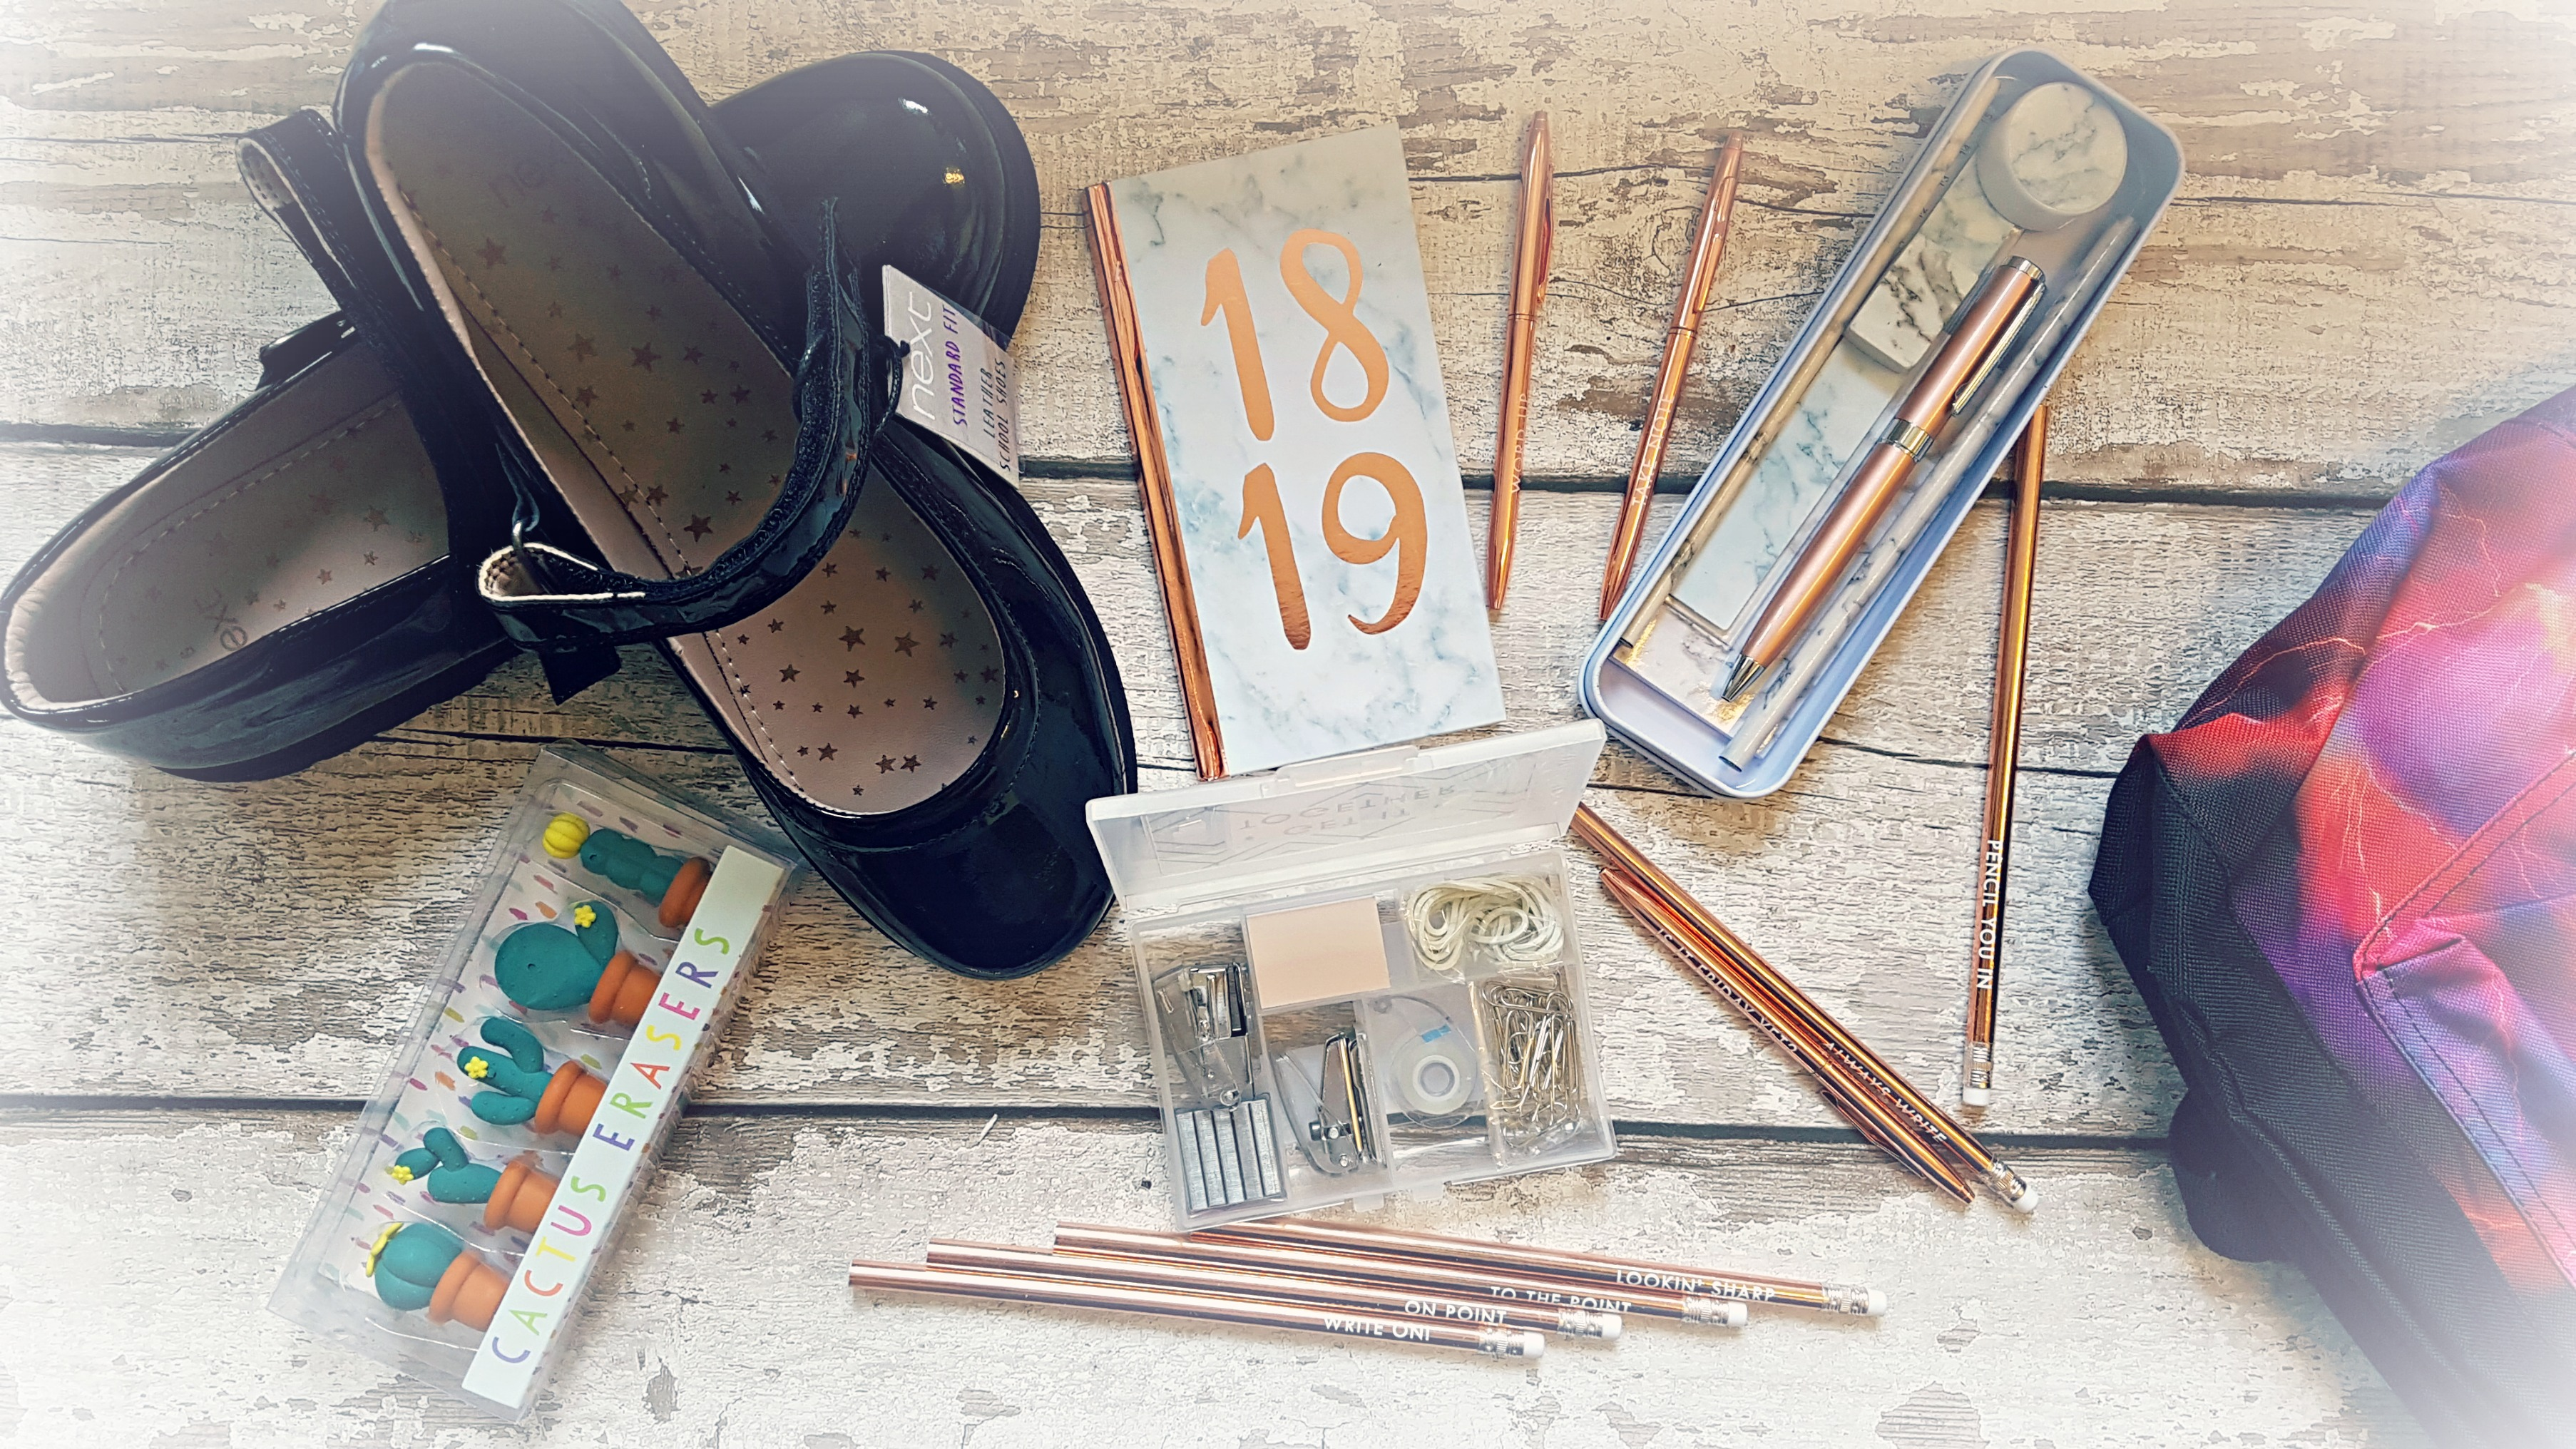 a flatlay of stationery items includng pens and pencils in rose gold with quotes on them, 18/19 school diary, black mary jane school shoes and a pink school bag